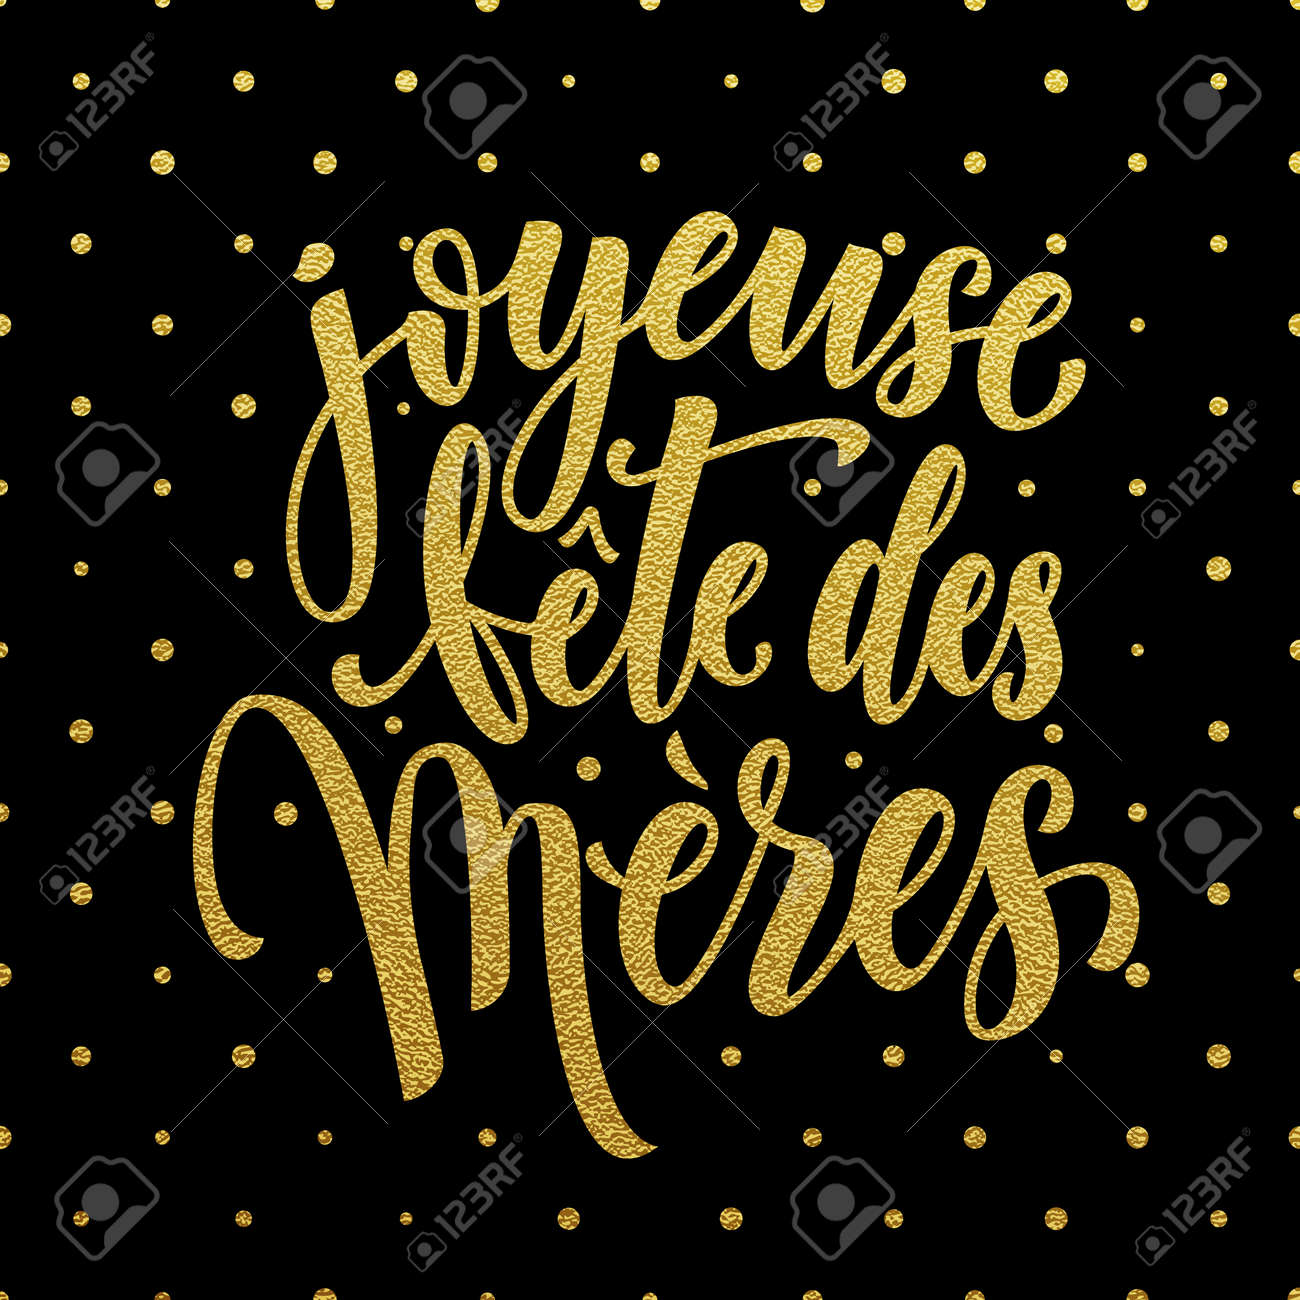 Joyeuse Fete Des Meres Mothers Day In French Vector Greeting Card